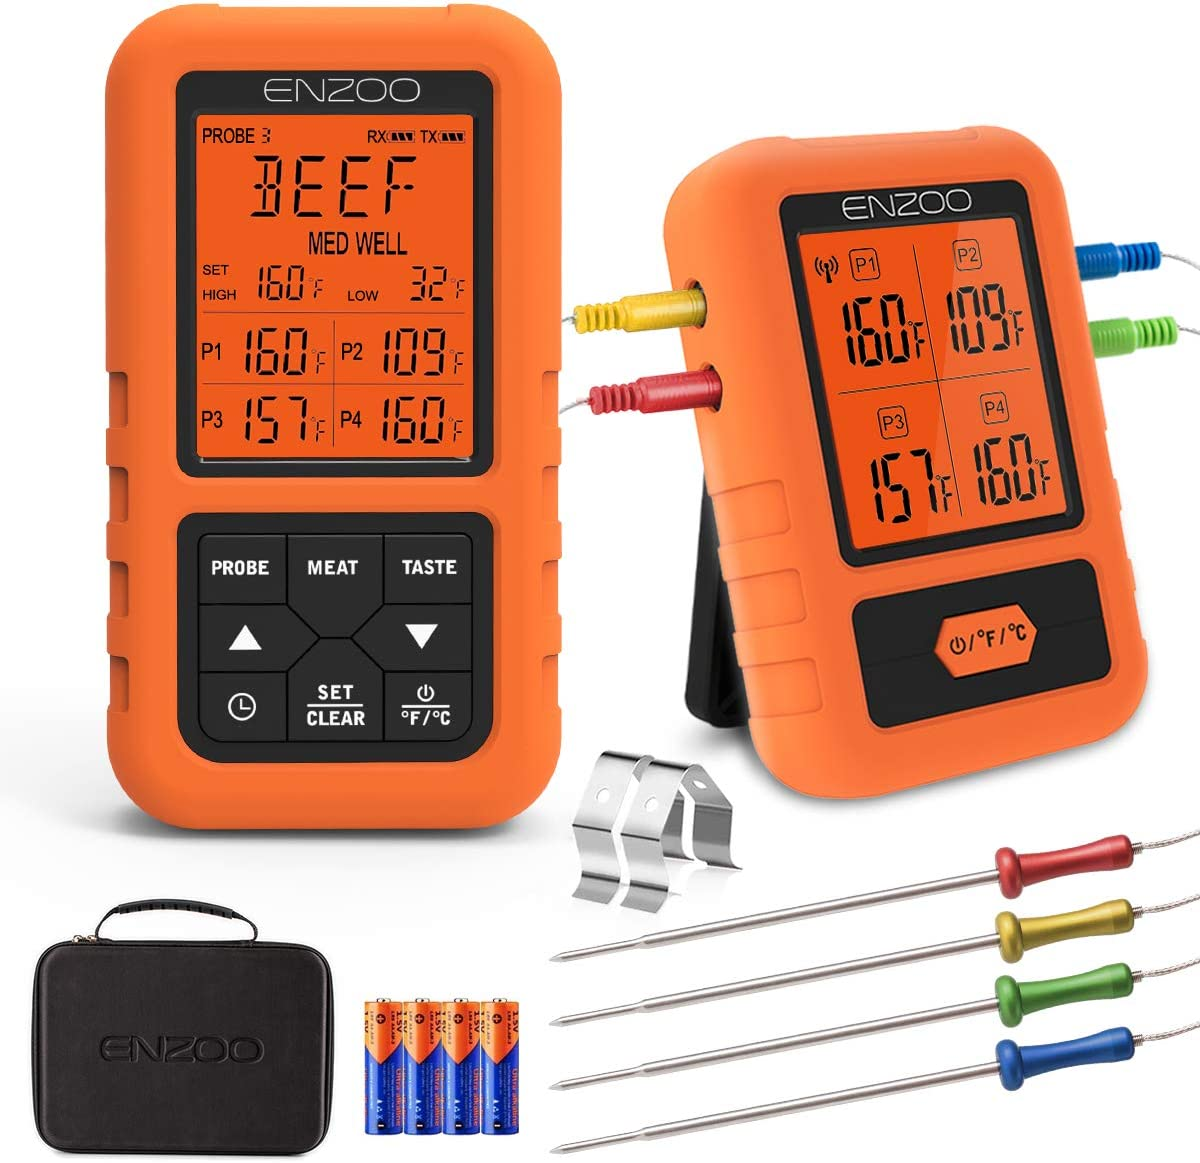 Most accurate wireless meat thermometer: ENZOO Wireless Meat thermometer